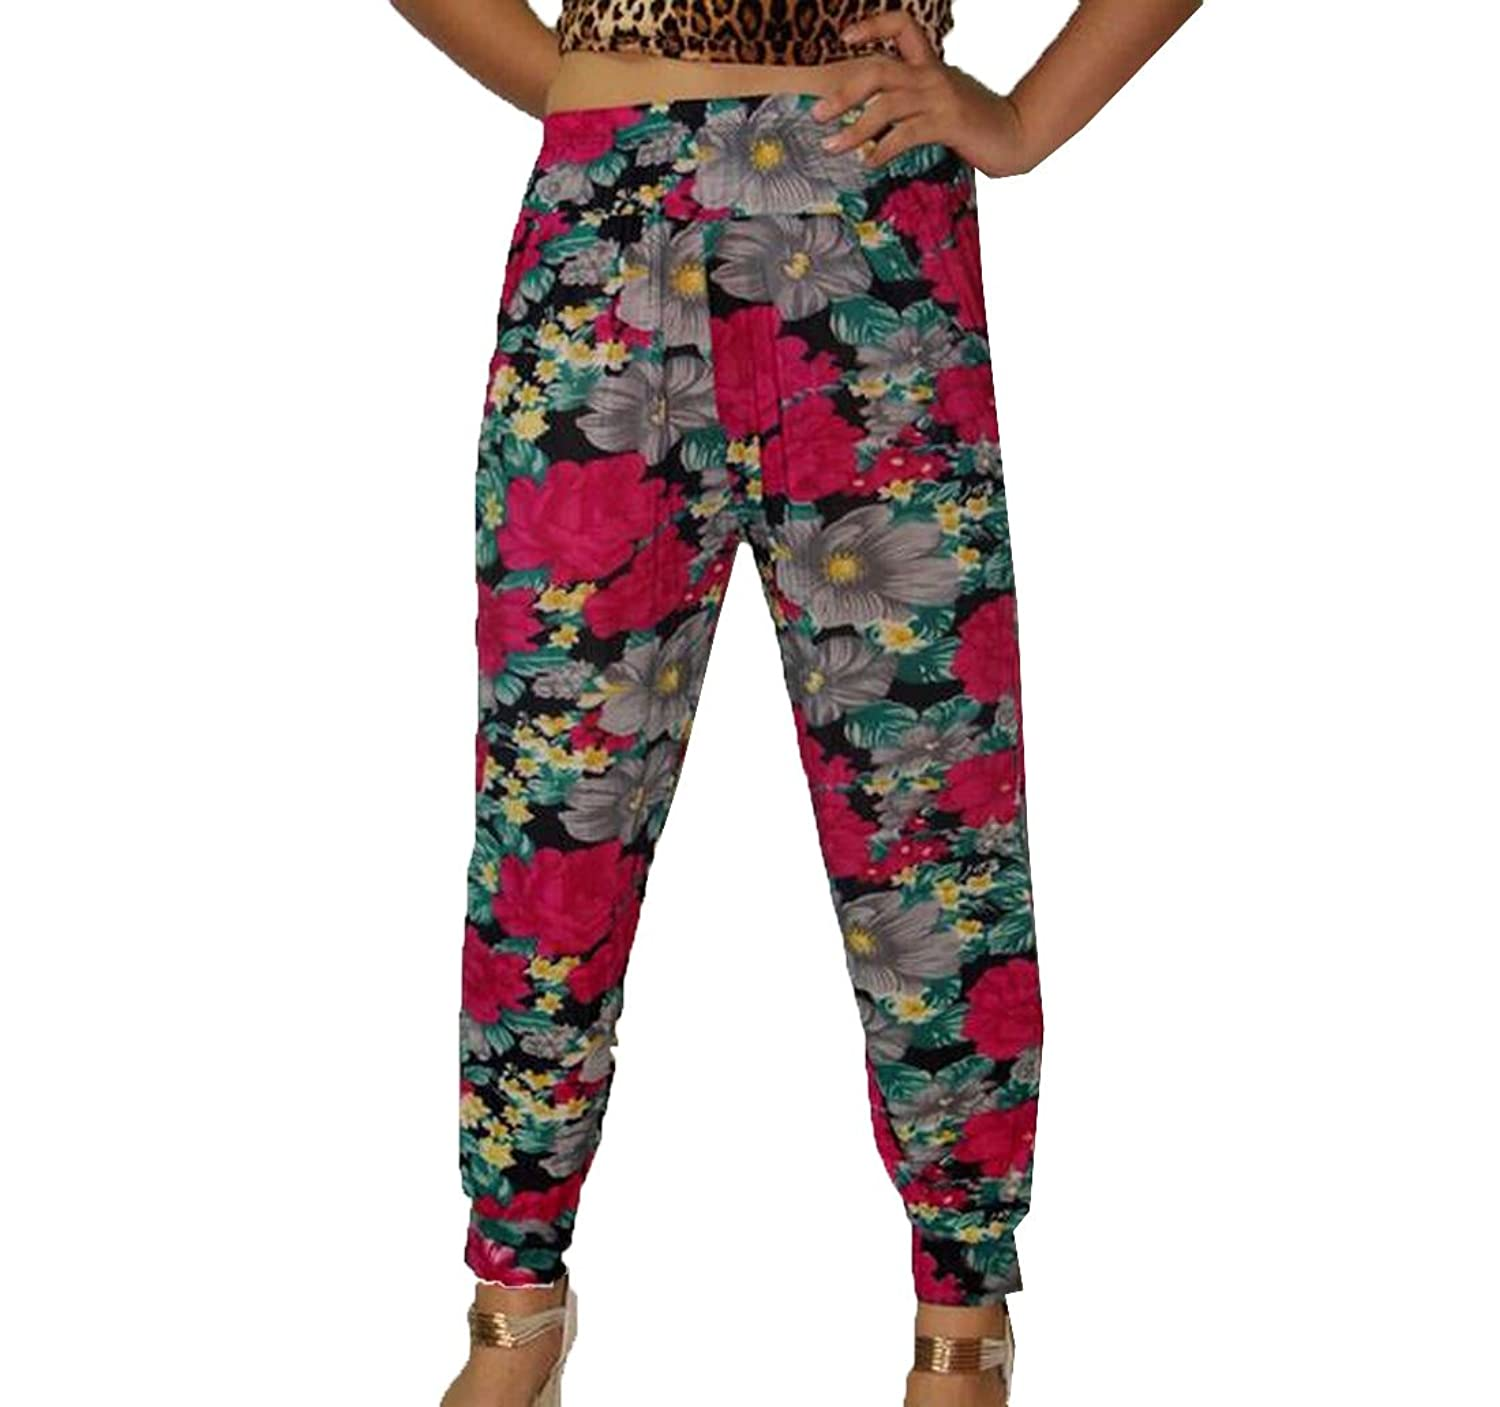 Sheng Xi Womens Beam Foot Breathable Floral Baggy Palazzo Pants